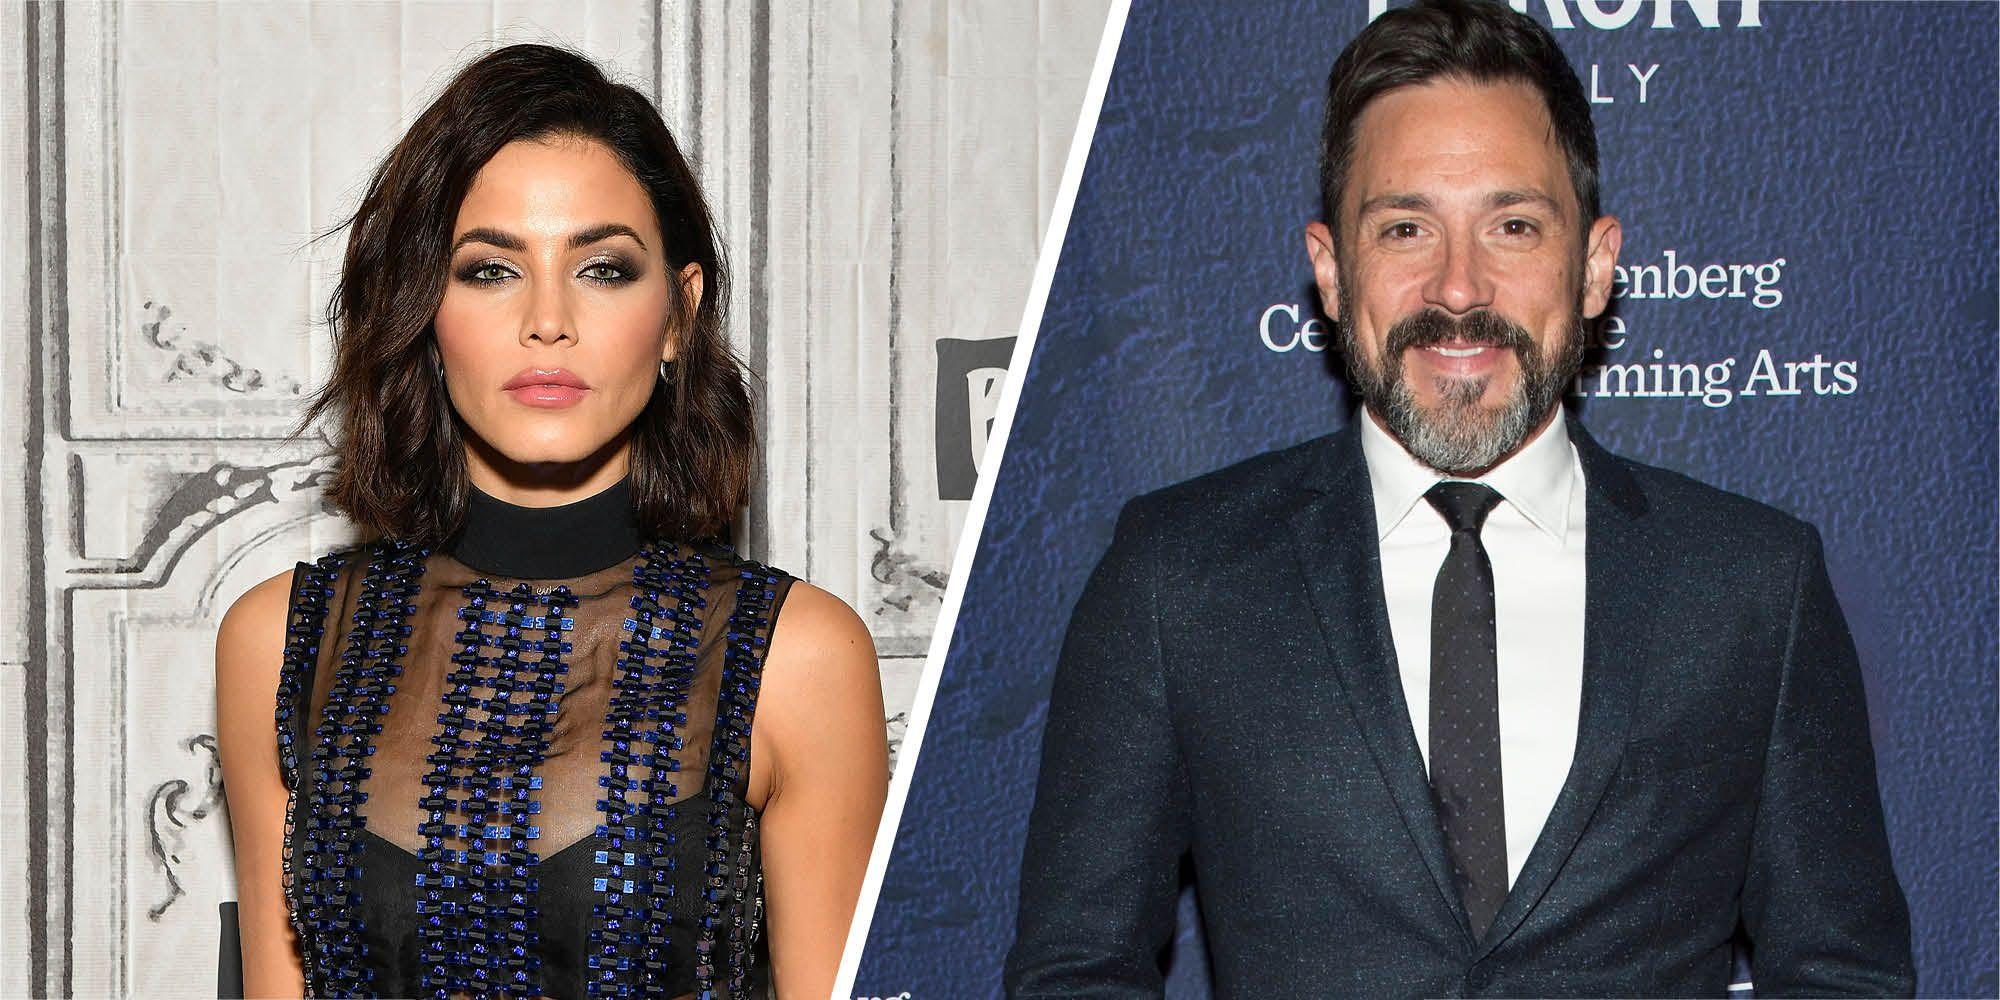 Jenna Dewan And Steve Kazee Make Their Romance Instagram Official - Check Out The Sweet Post!